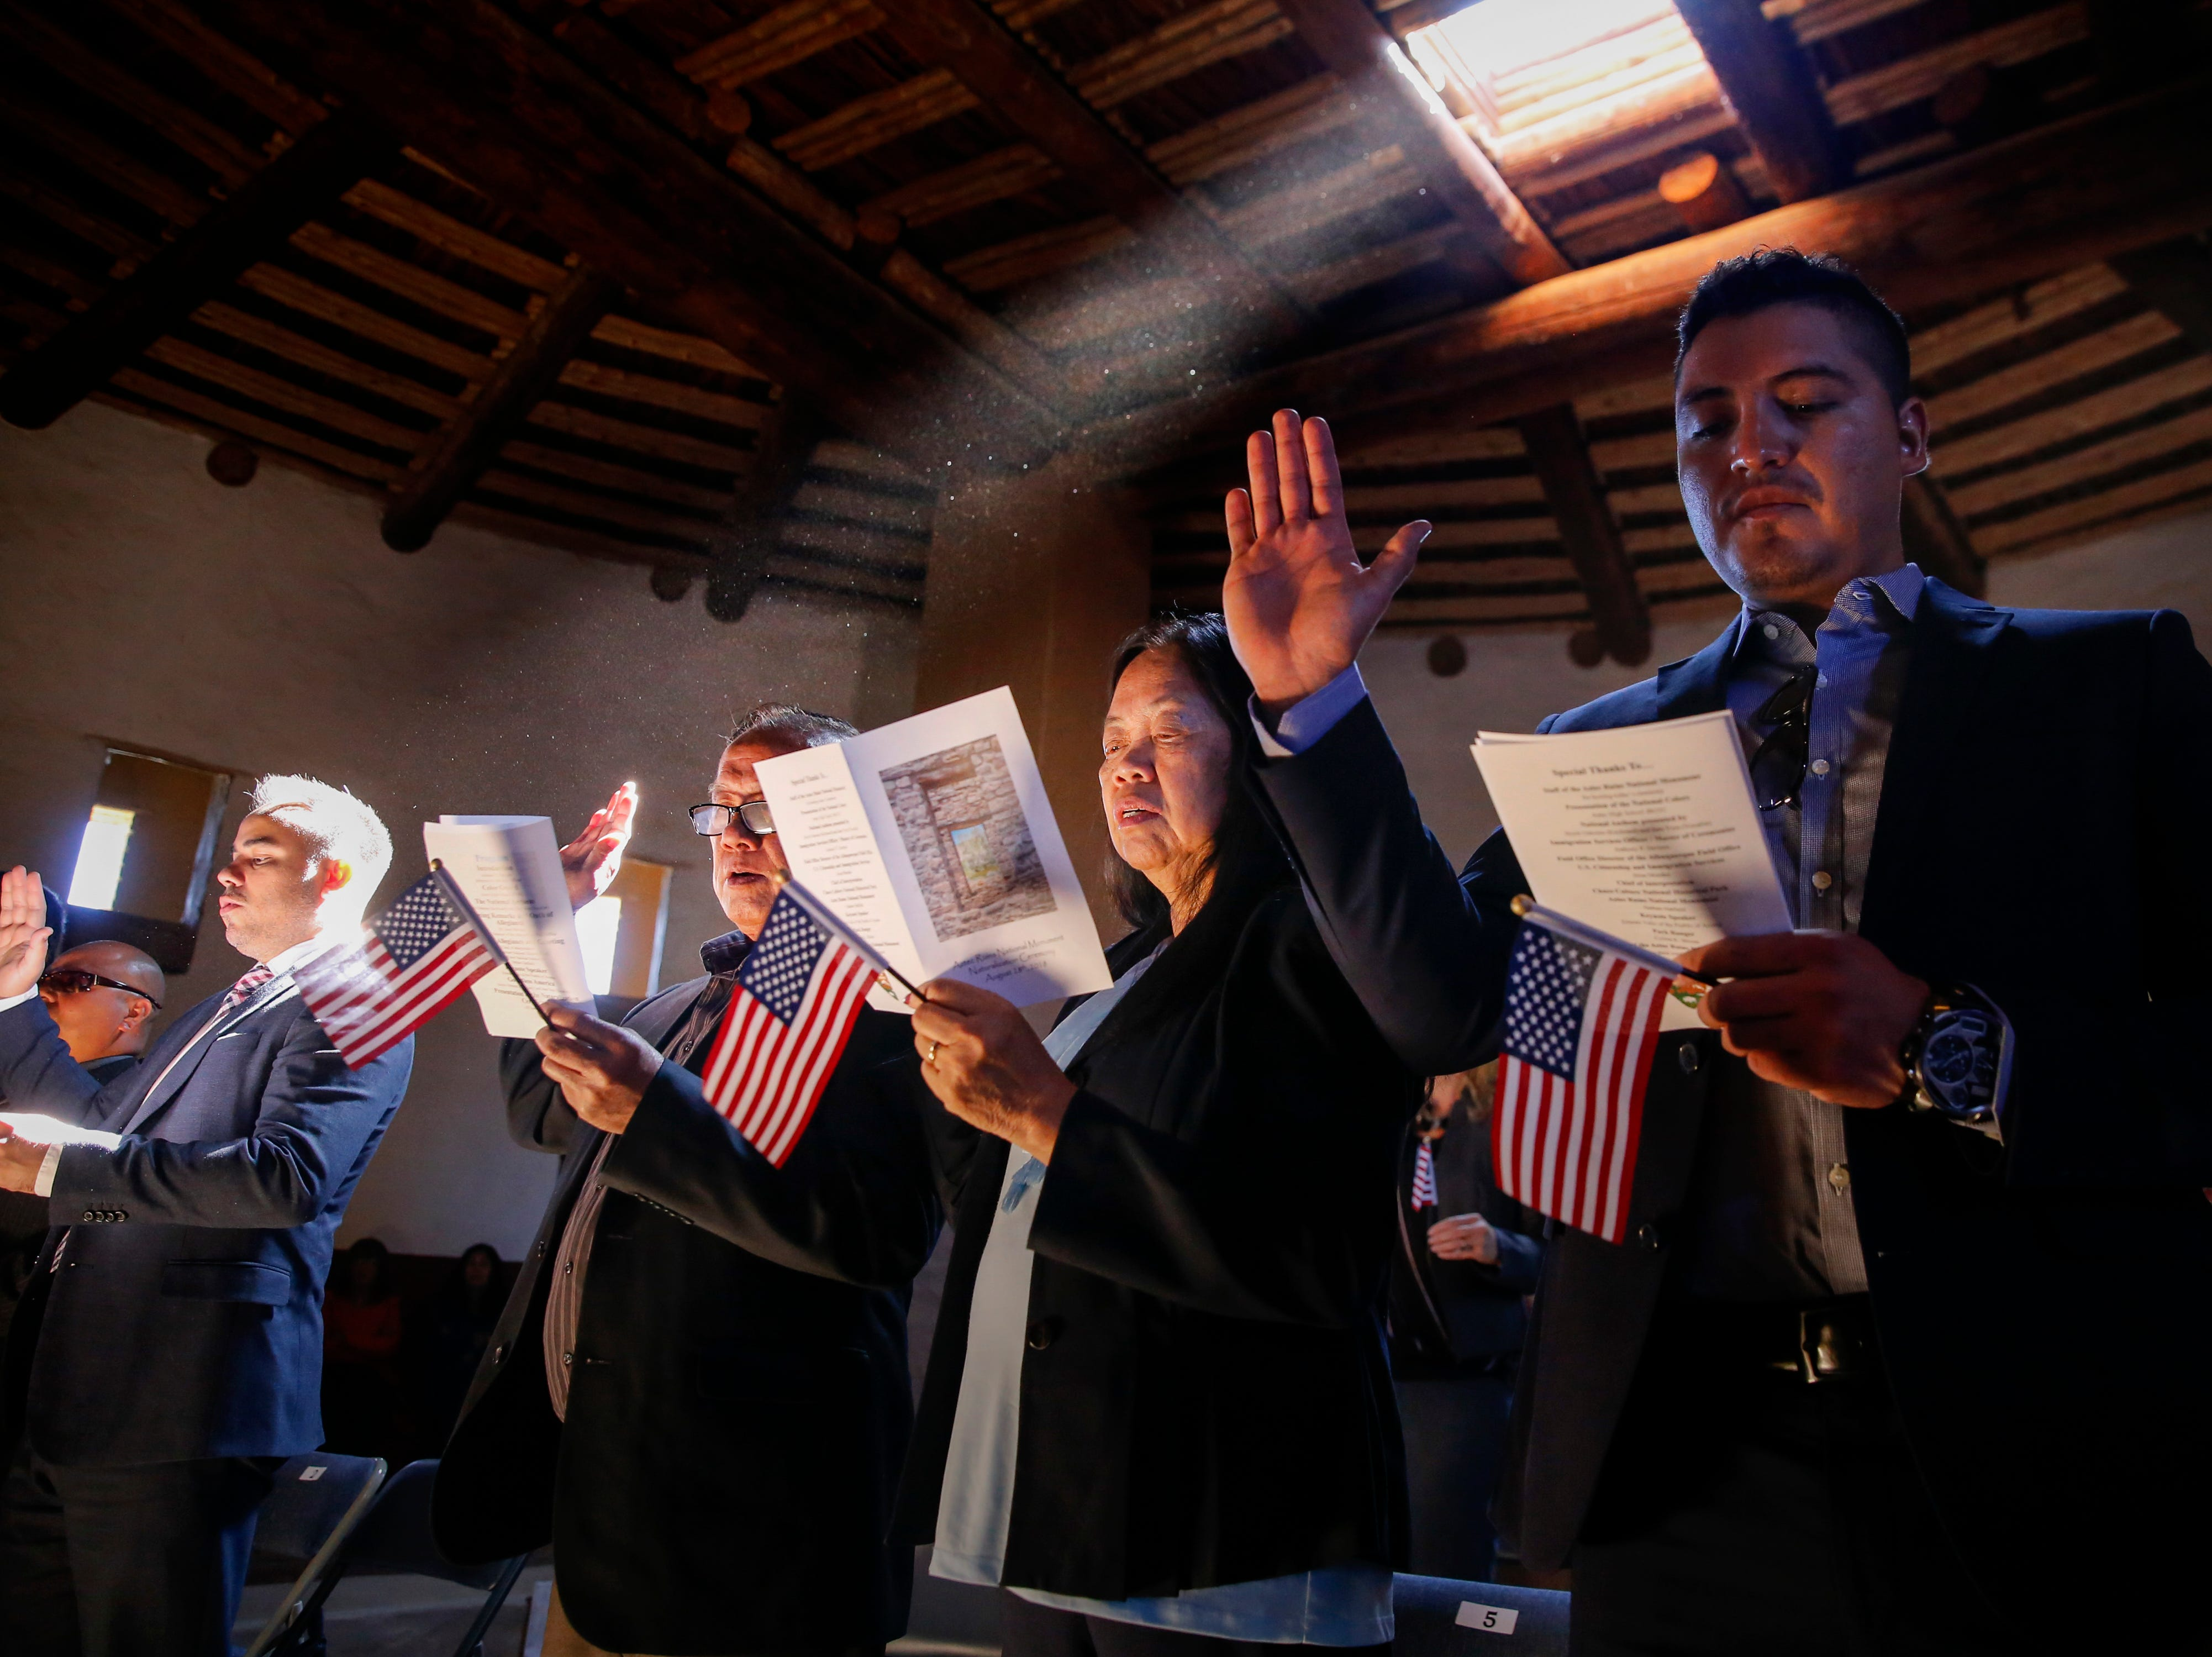 From left, Juan Luis Núñez, Norman Enriquez, Rudolpho Mosqueda, Nenita Mosqueda and Jose Luis Perez take the oath of citizenship, Friday, Sept. 28, 2018 during a naturalization ceremony at the Aztec Ruins National Monument.